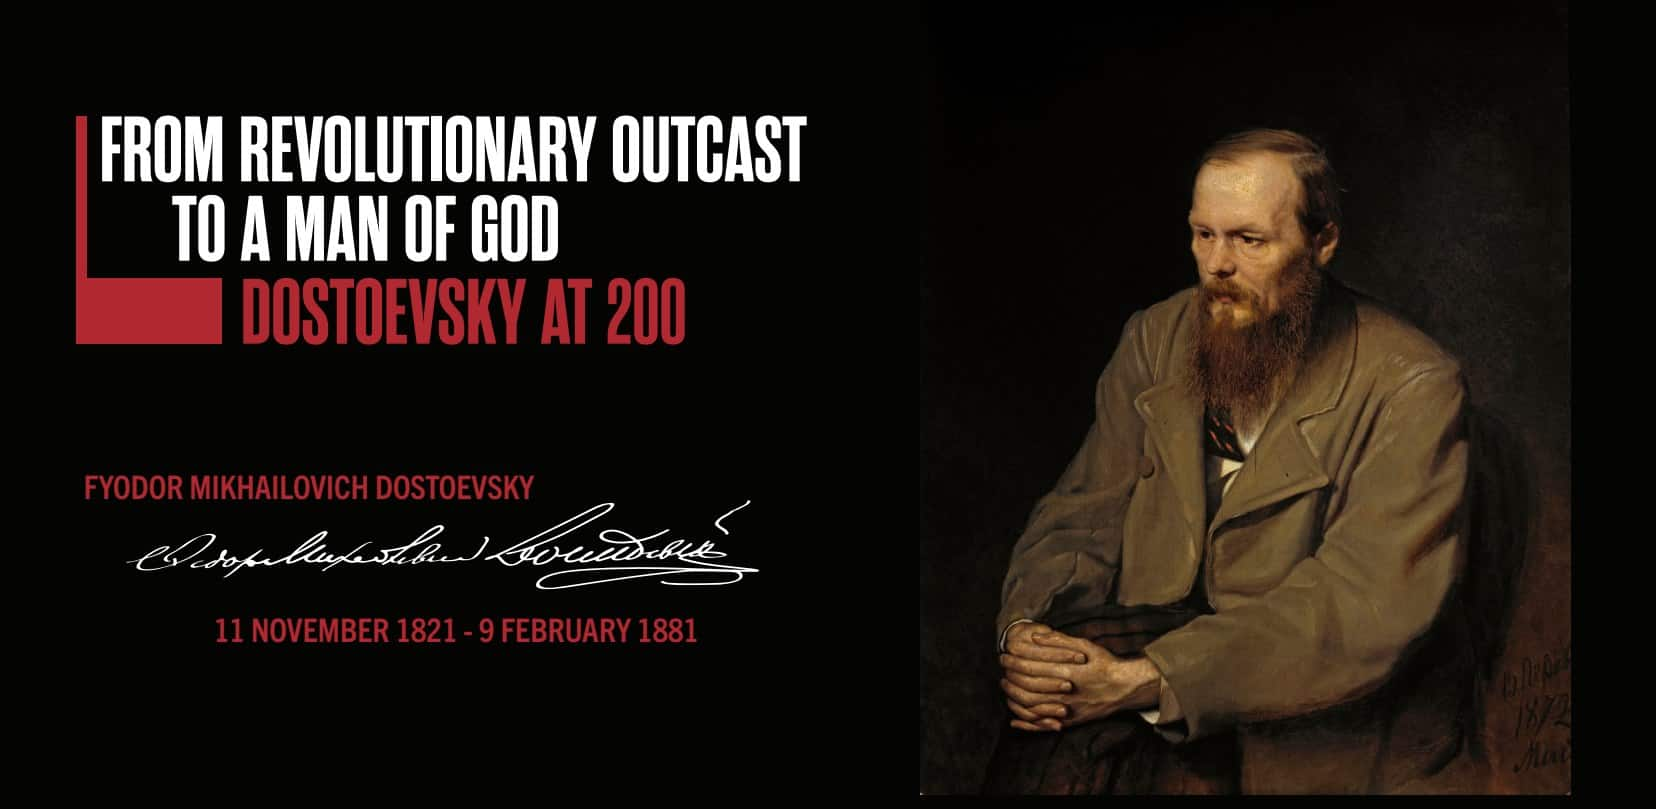 A black banner with a portrait of an older Dostoevsky. The banner features the title of the exhibition.